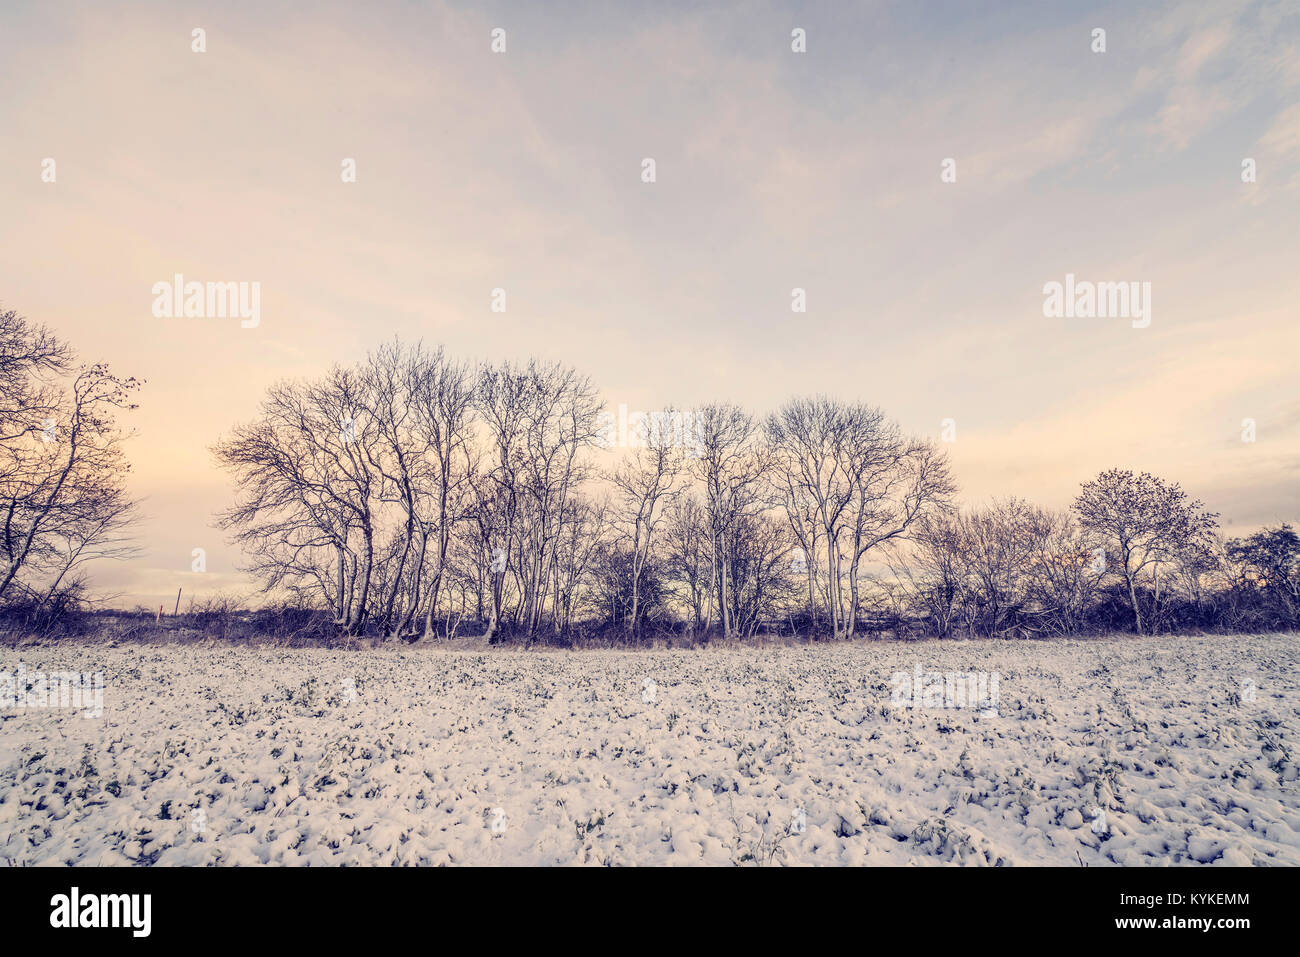 Winter landscape with barenaked trees in the morning sunrise with snow on a rural field - Stock Image